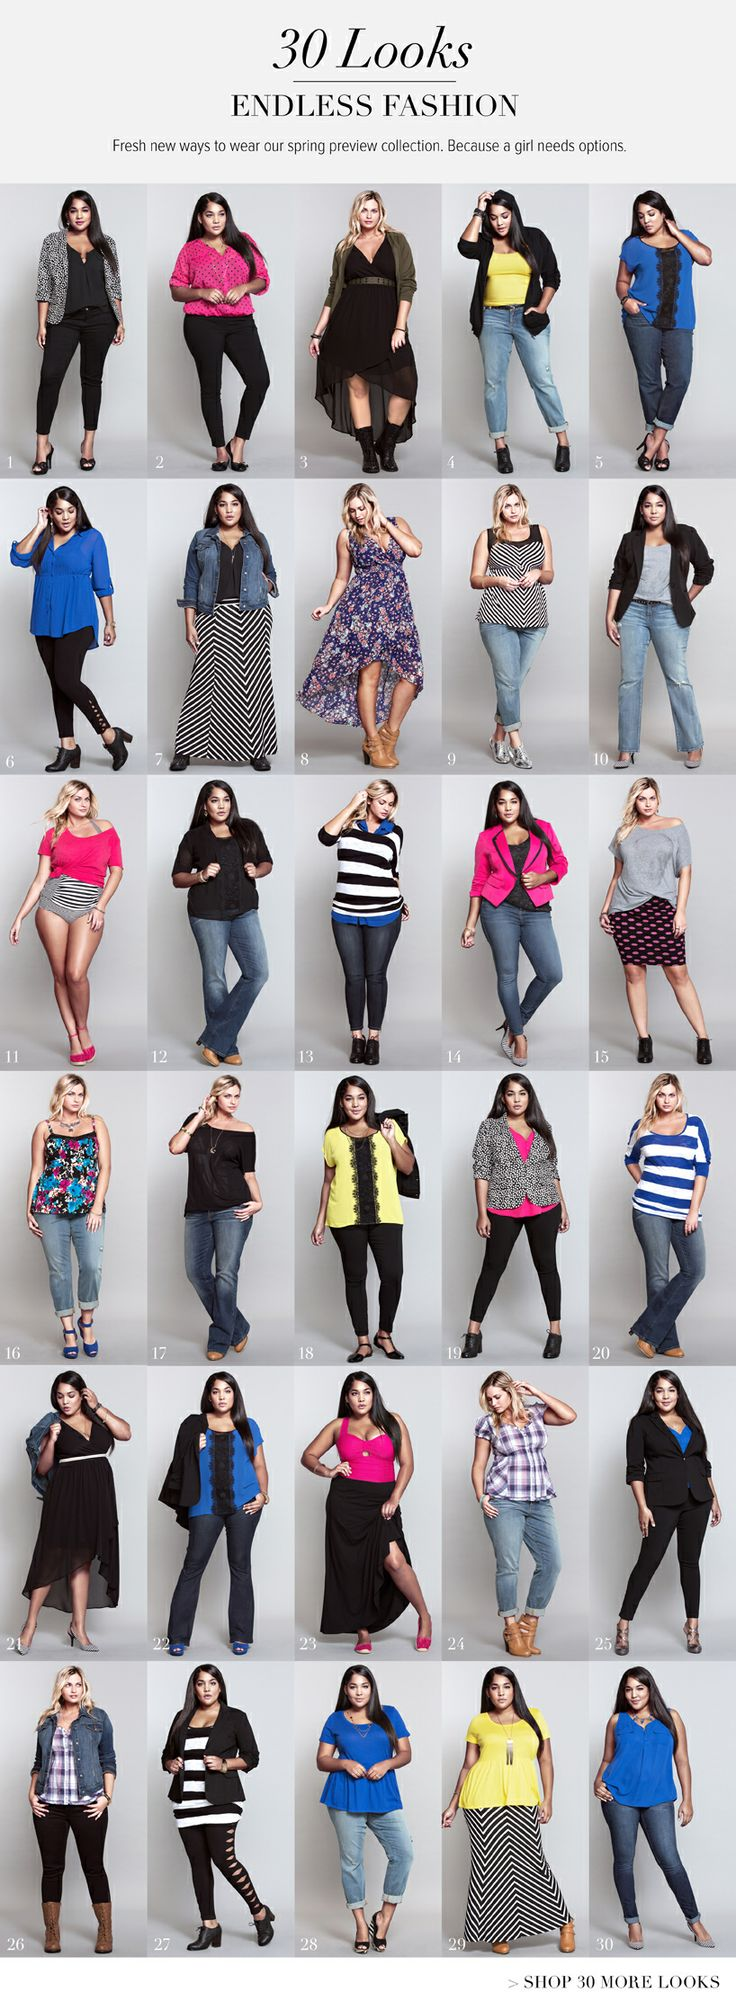 30 days of outfits - part 2! Because we girls have to have options... #ShopByOutfit #TorridSpring